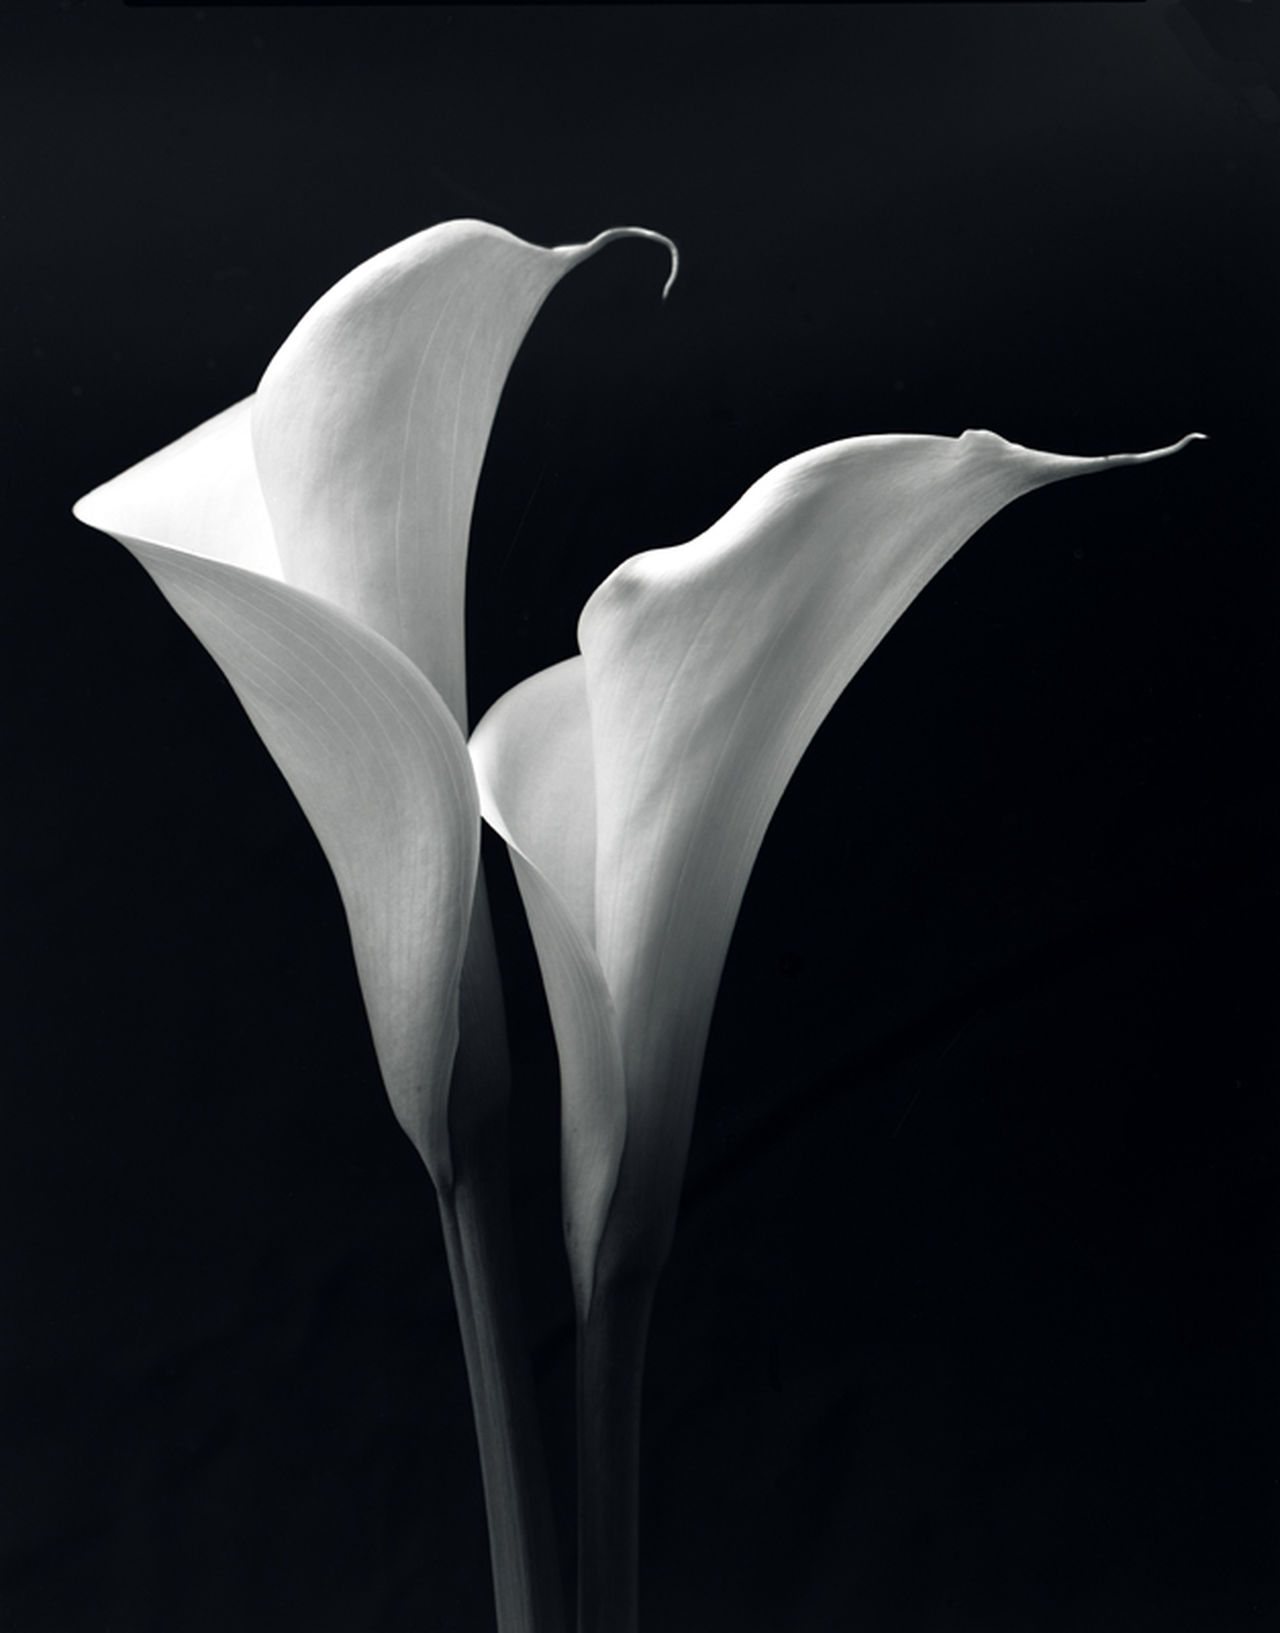 Lilies Lilies In Bloom Canna Lily Lovers Flowers B&w B&w Photography Still Life